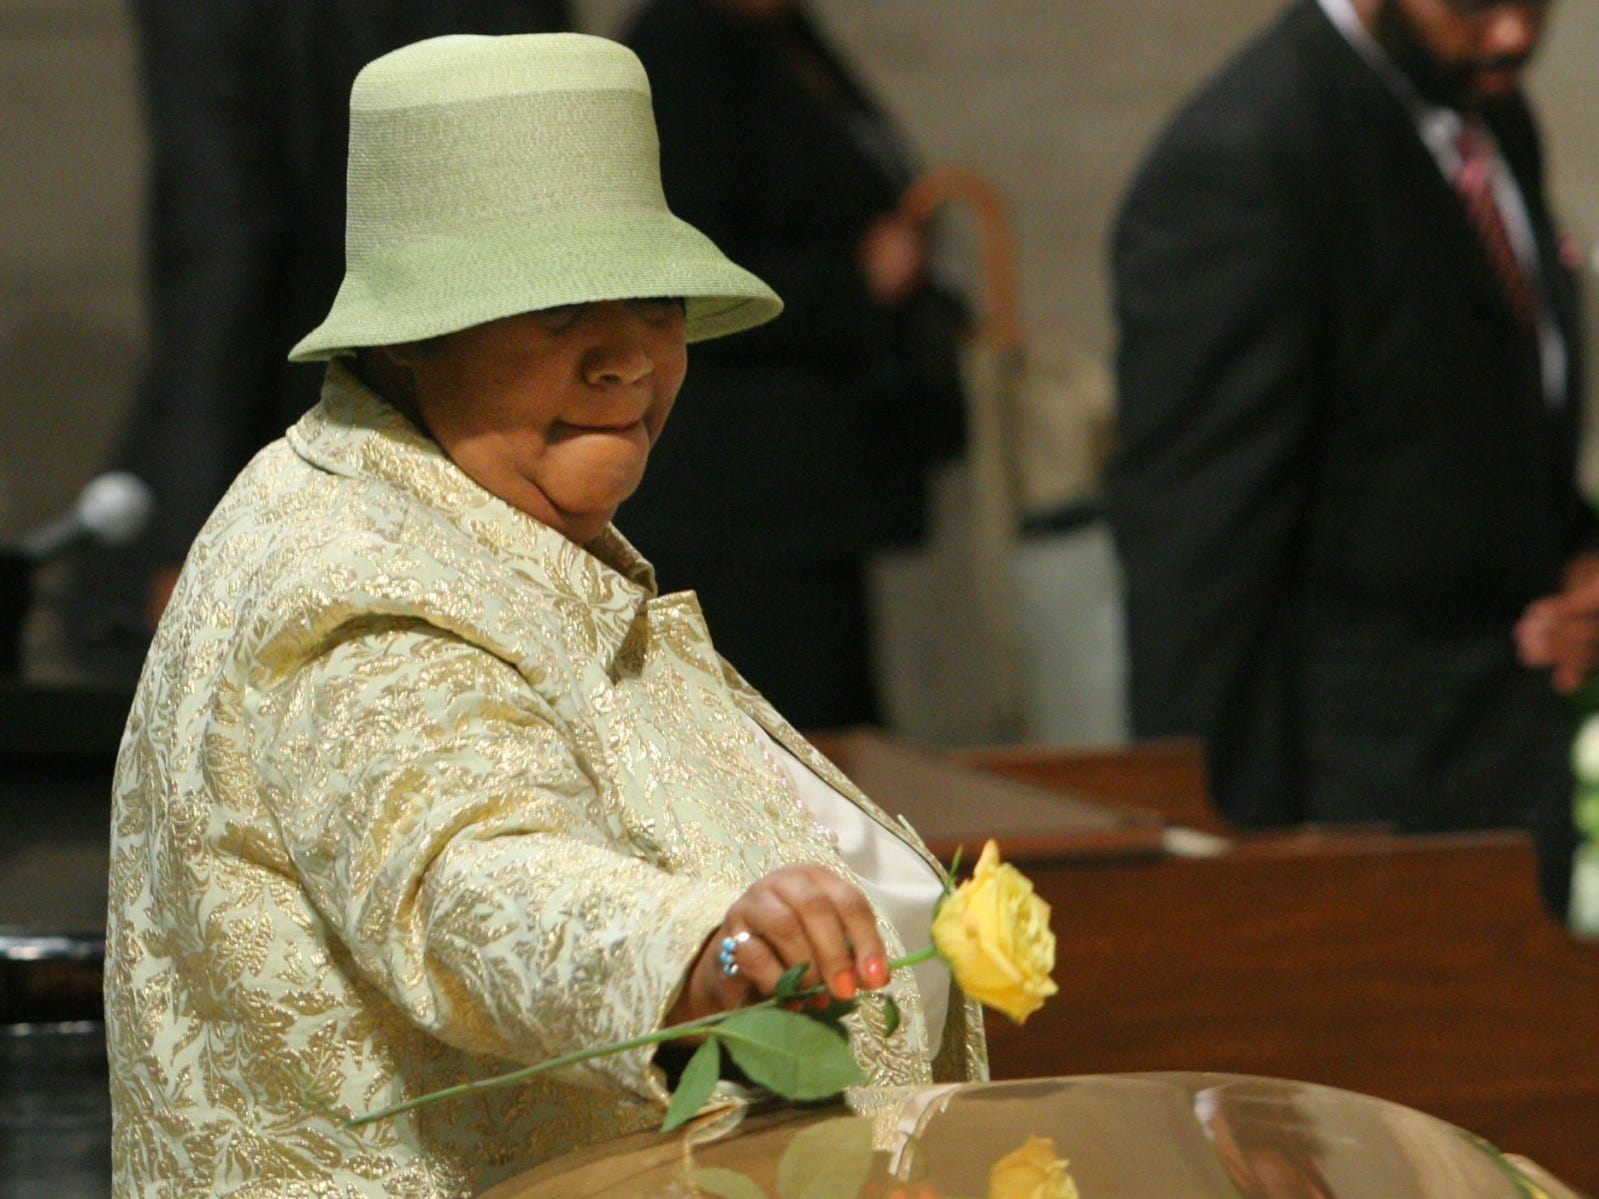 Aretha Franklin place a rose on the casket of Luther Vandross before she sings at his funeral, Friday July 8, 2005 in New York.